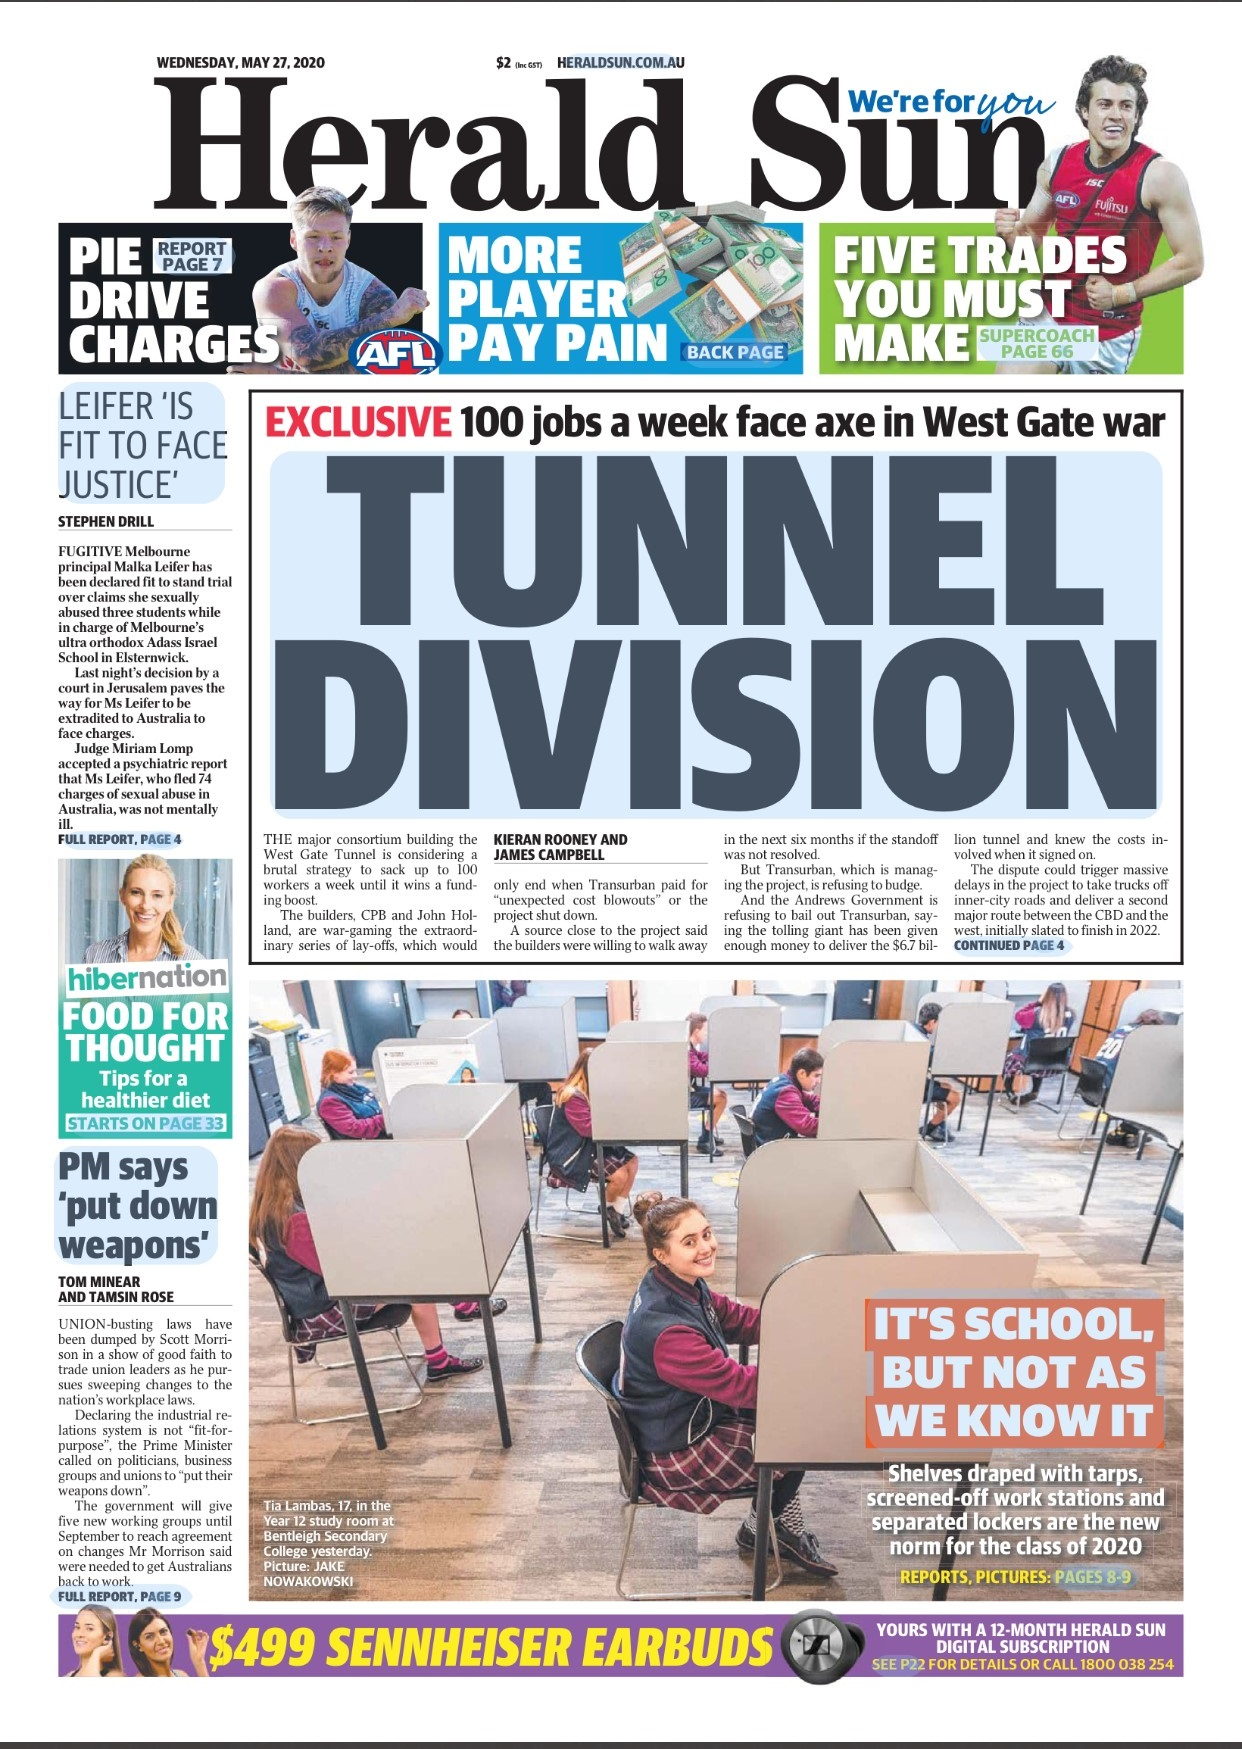 Herald Sun front cover